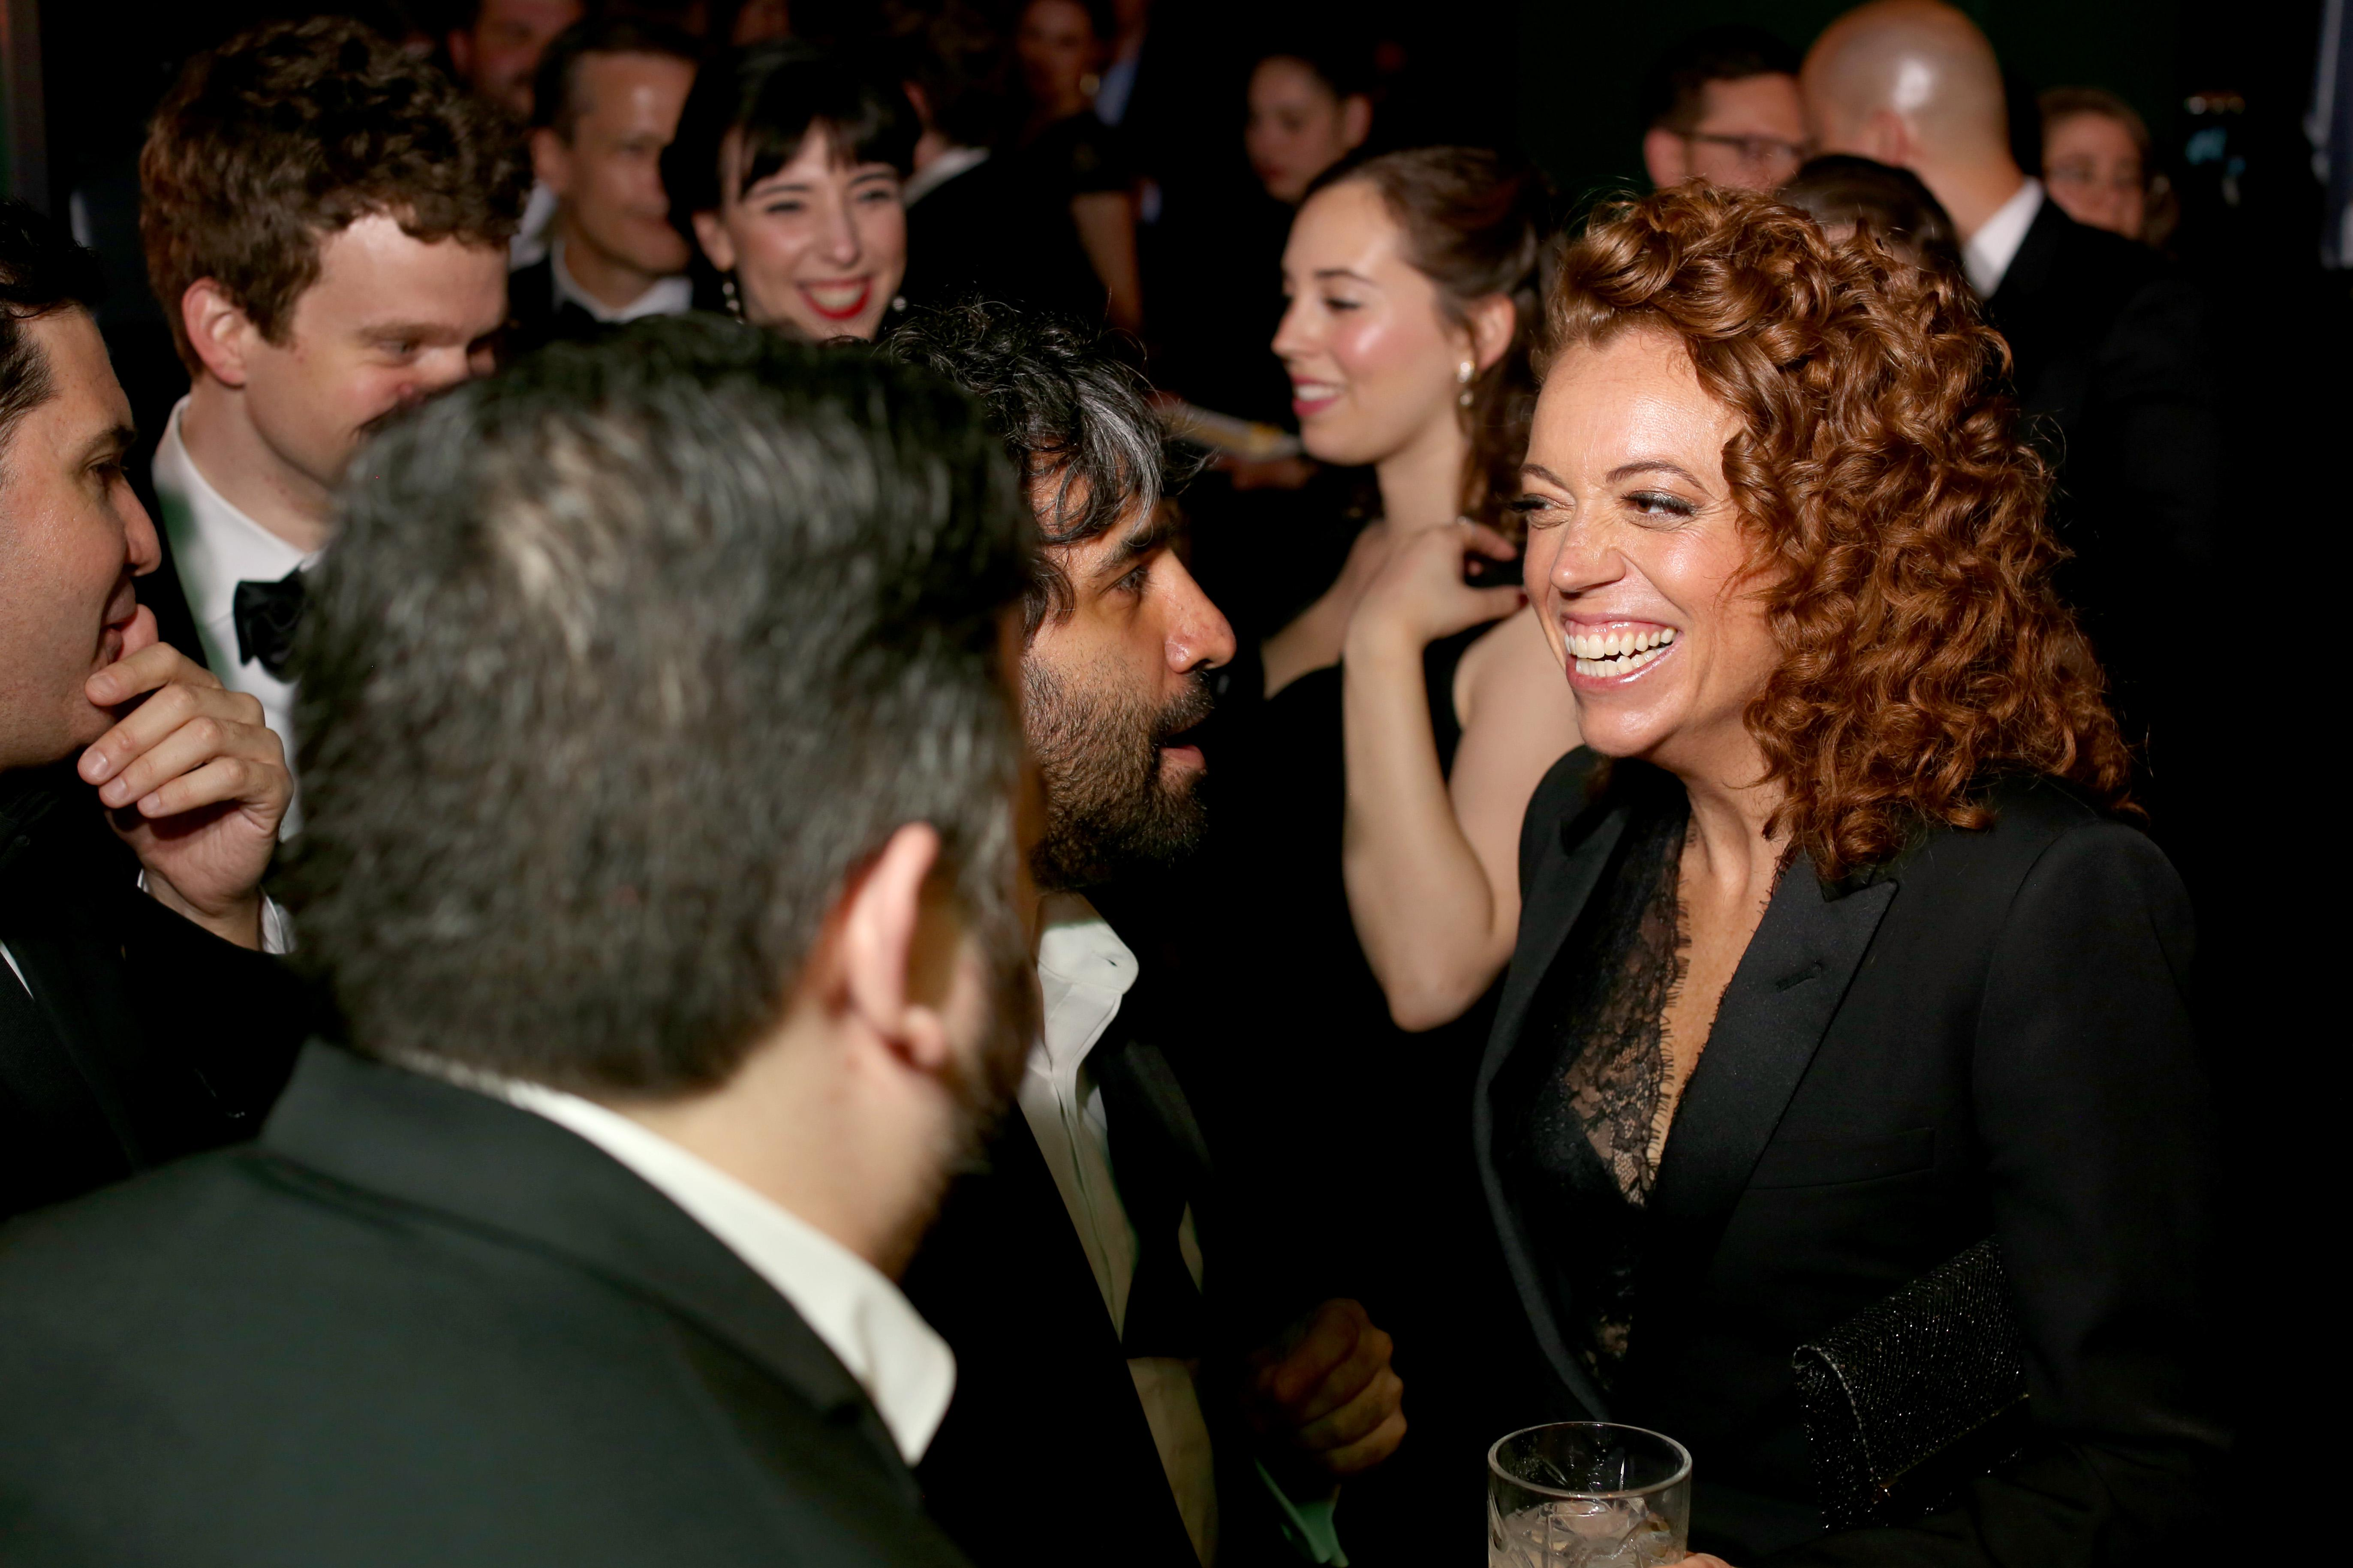 Michelle Wolf attends the Celebration After the White House Correspondents' Dinner hosted by Netflix's The Break with Michelle Wolf on April 28, 2018 in Washington, D.C.